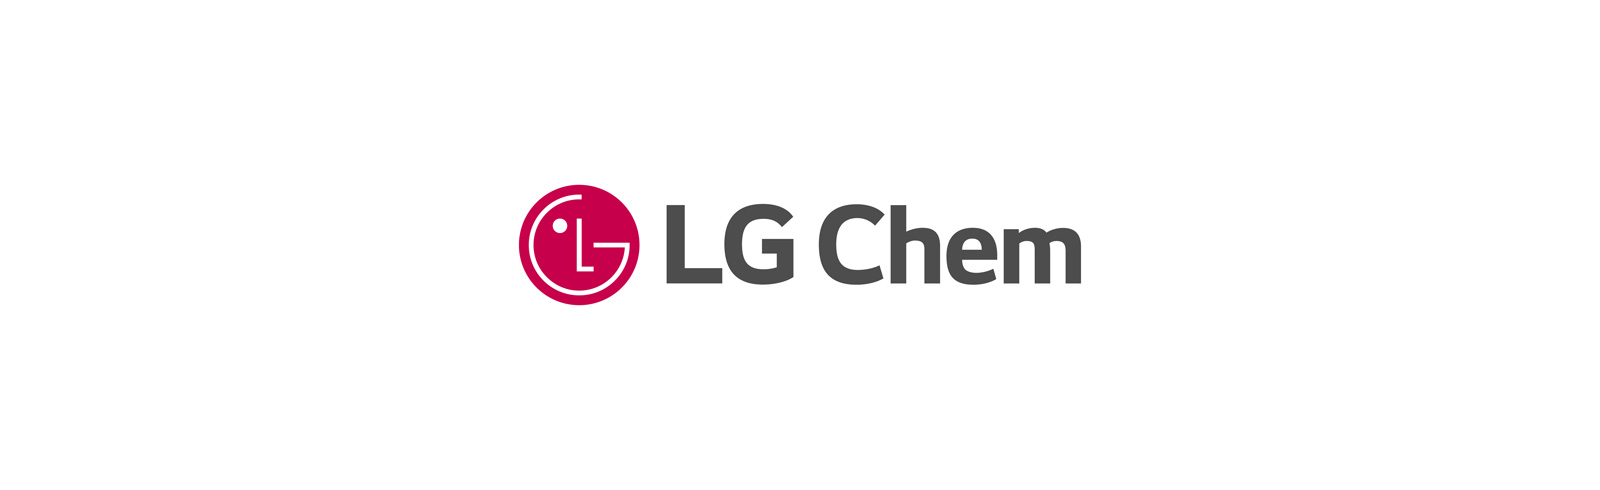 LG Chem and Geely make a joint venture in China for producing EV batteries